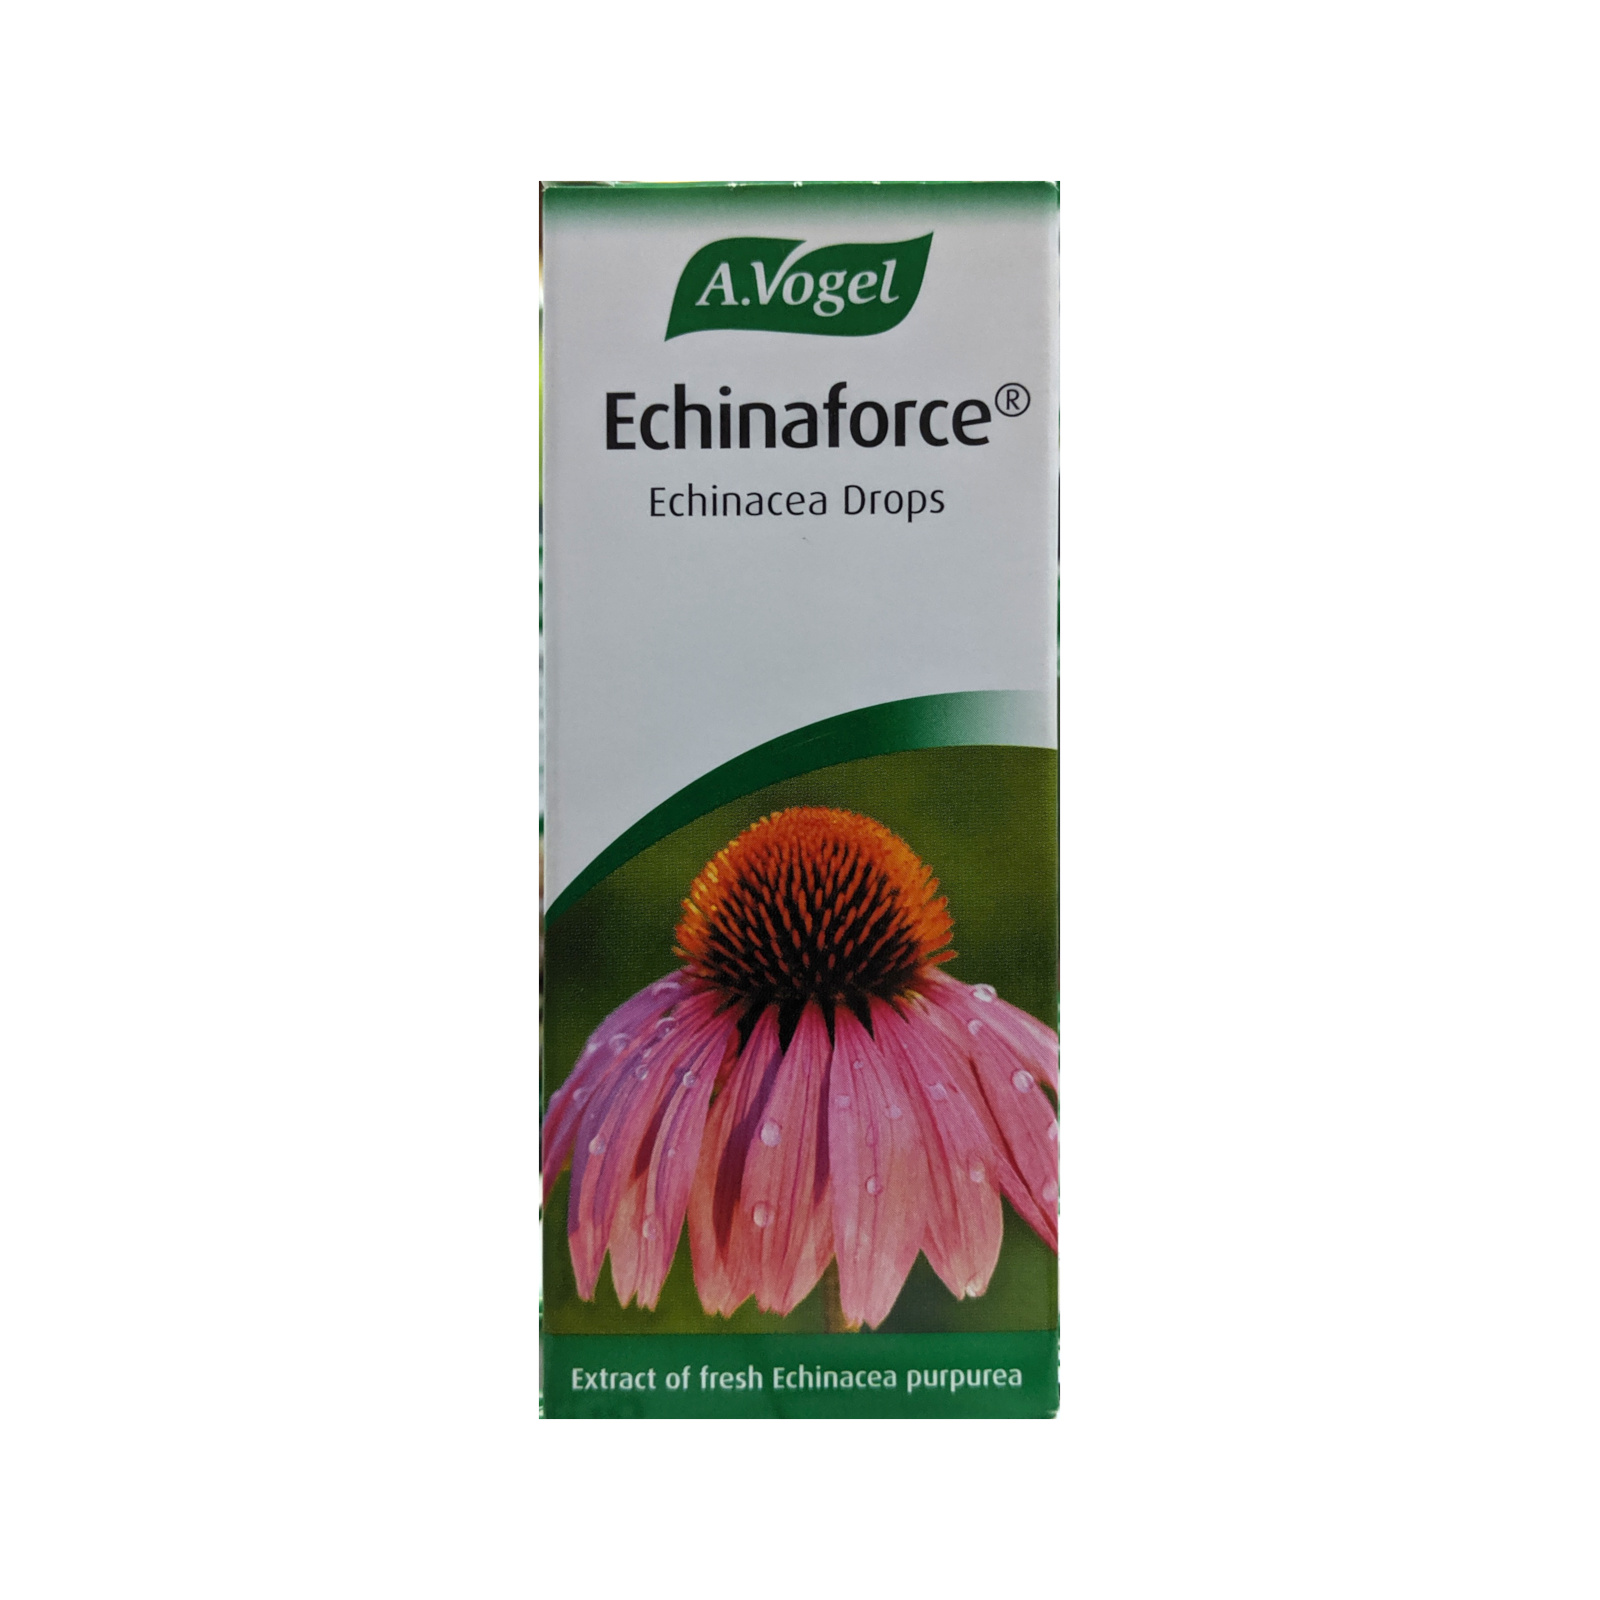 A Vogel Echinaforce Echinacea Drops 50ml